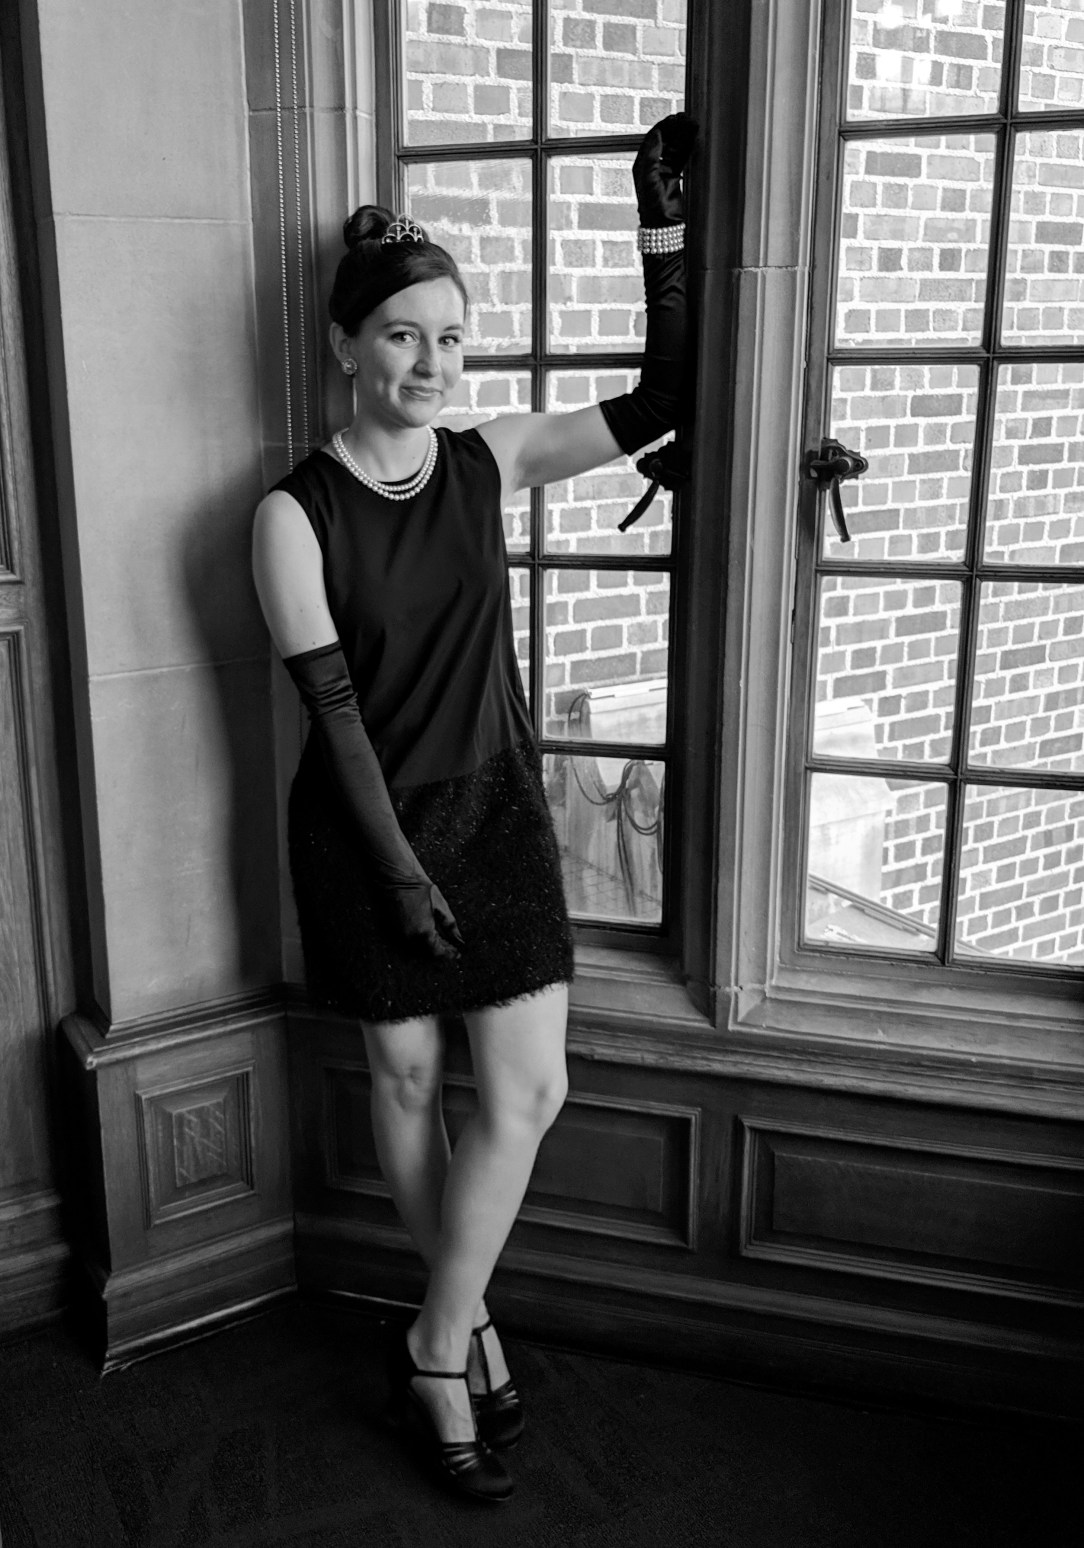 Audrey Hepburn costume leaning against a window